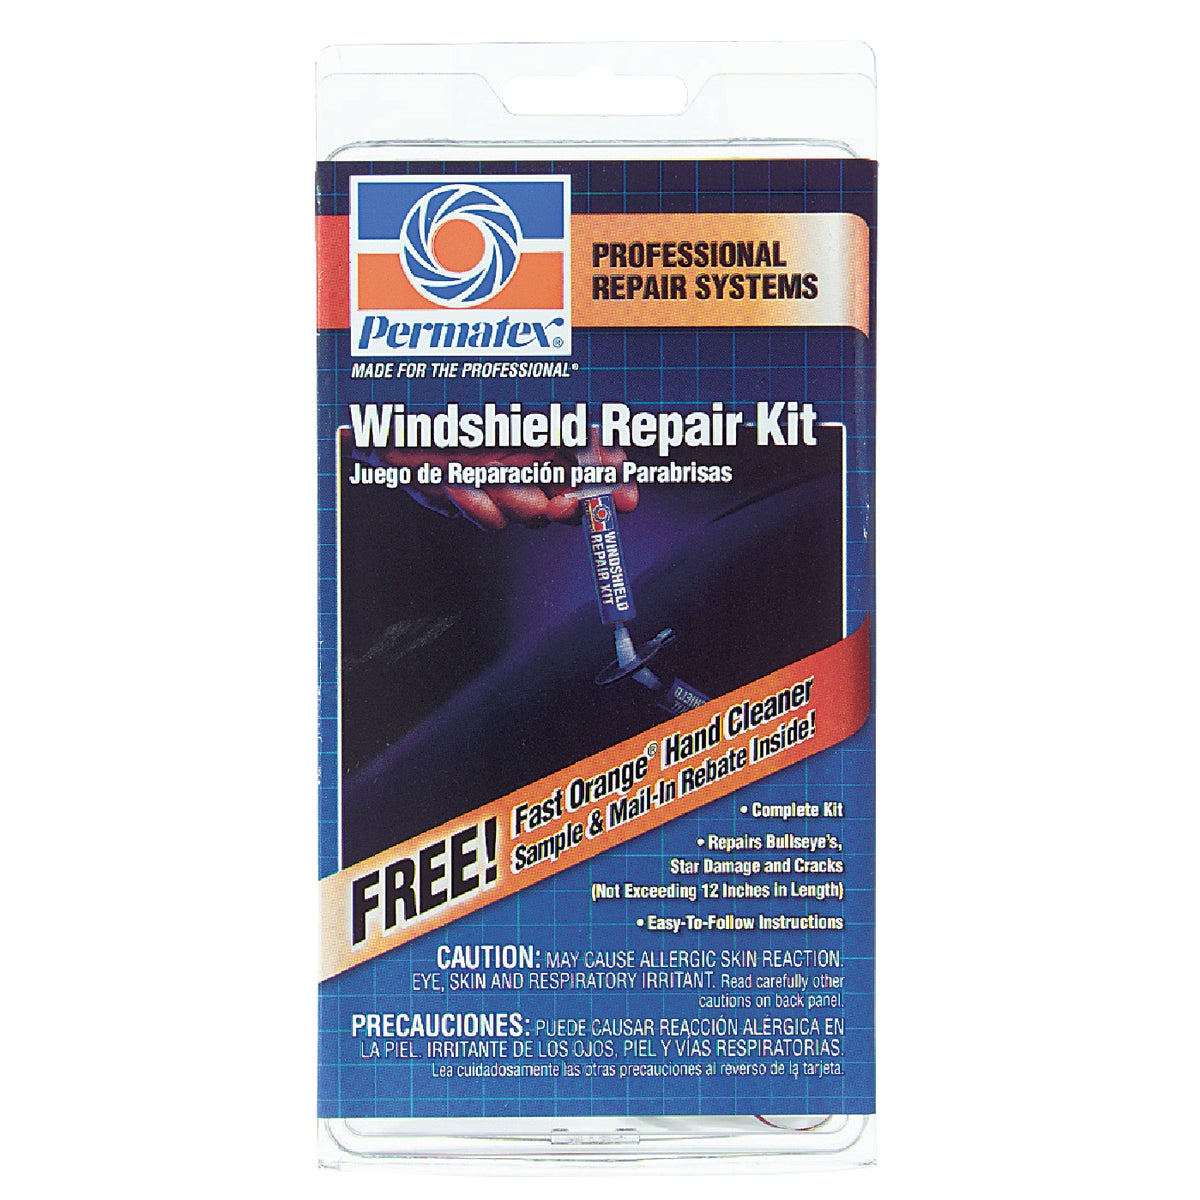 WINDSHIELD REPAIR KIT - 09103 by Itw Global Brands